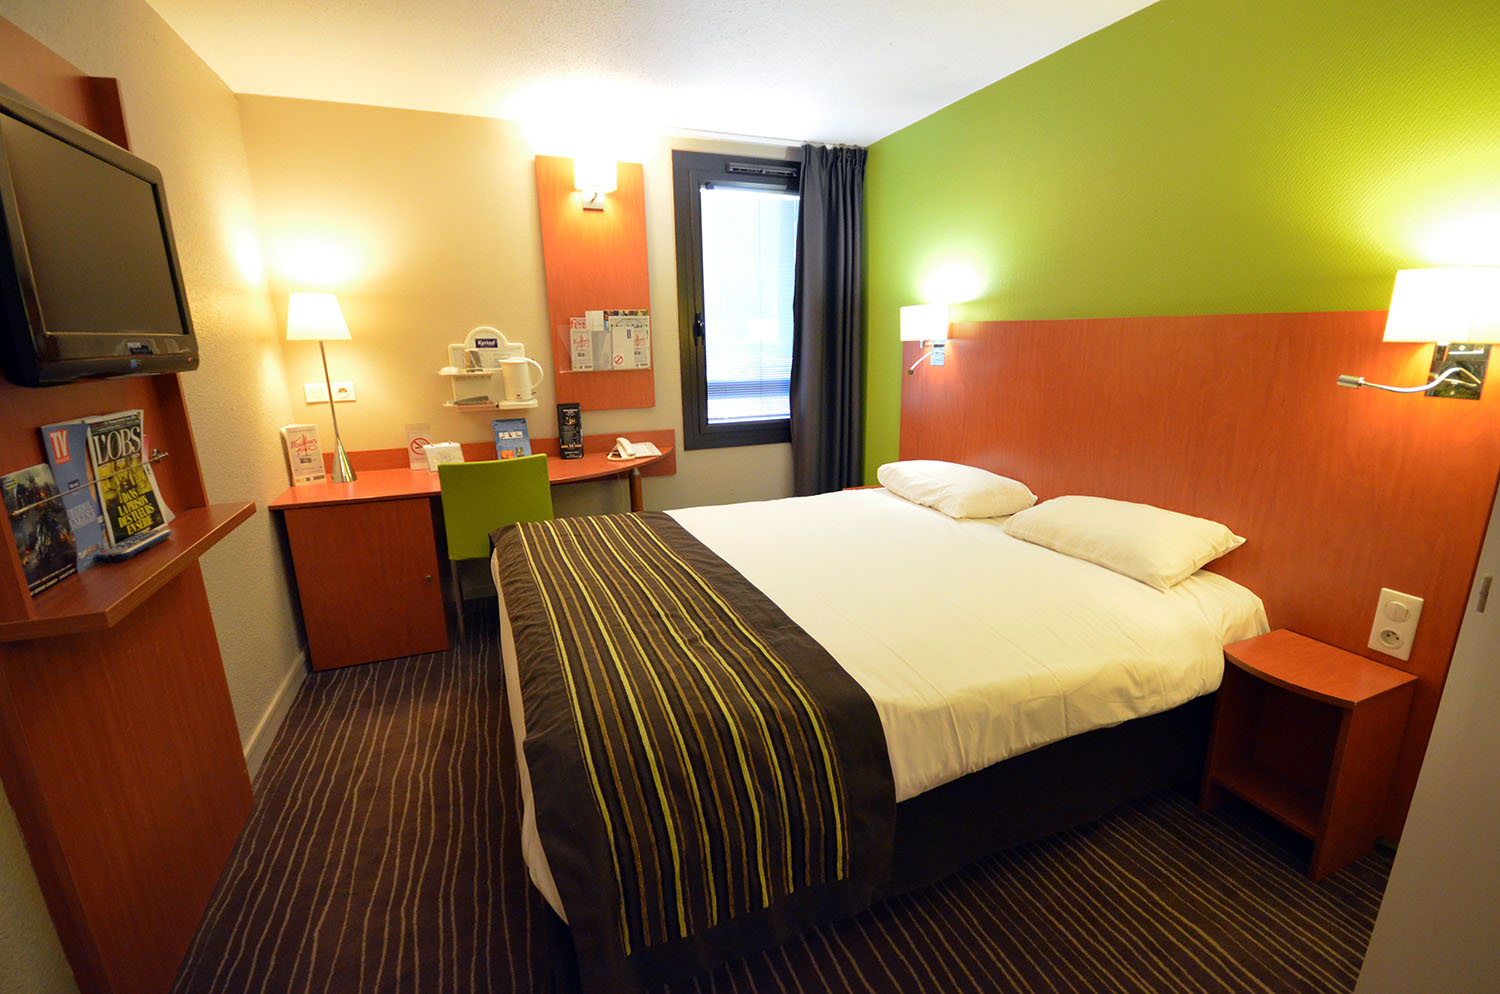 Rooms Hotels Kyriad Dijon Hotels Gare Centre Ville Et